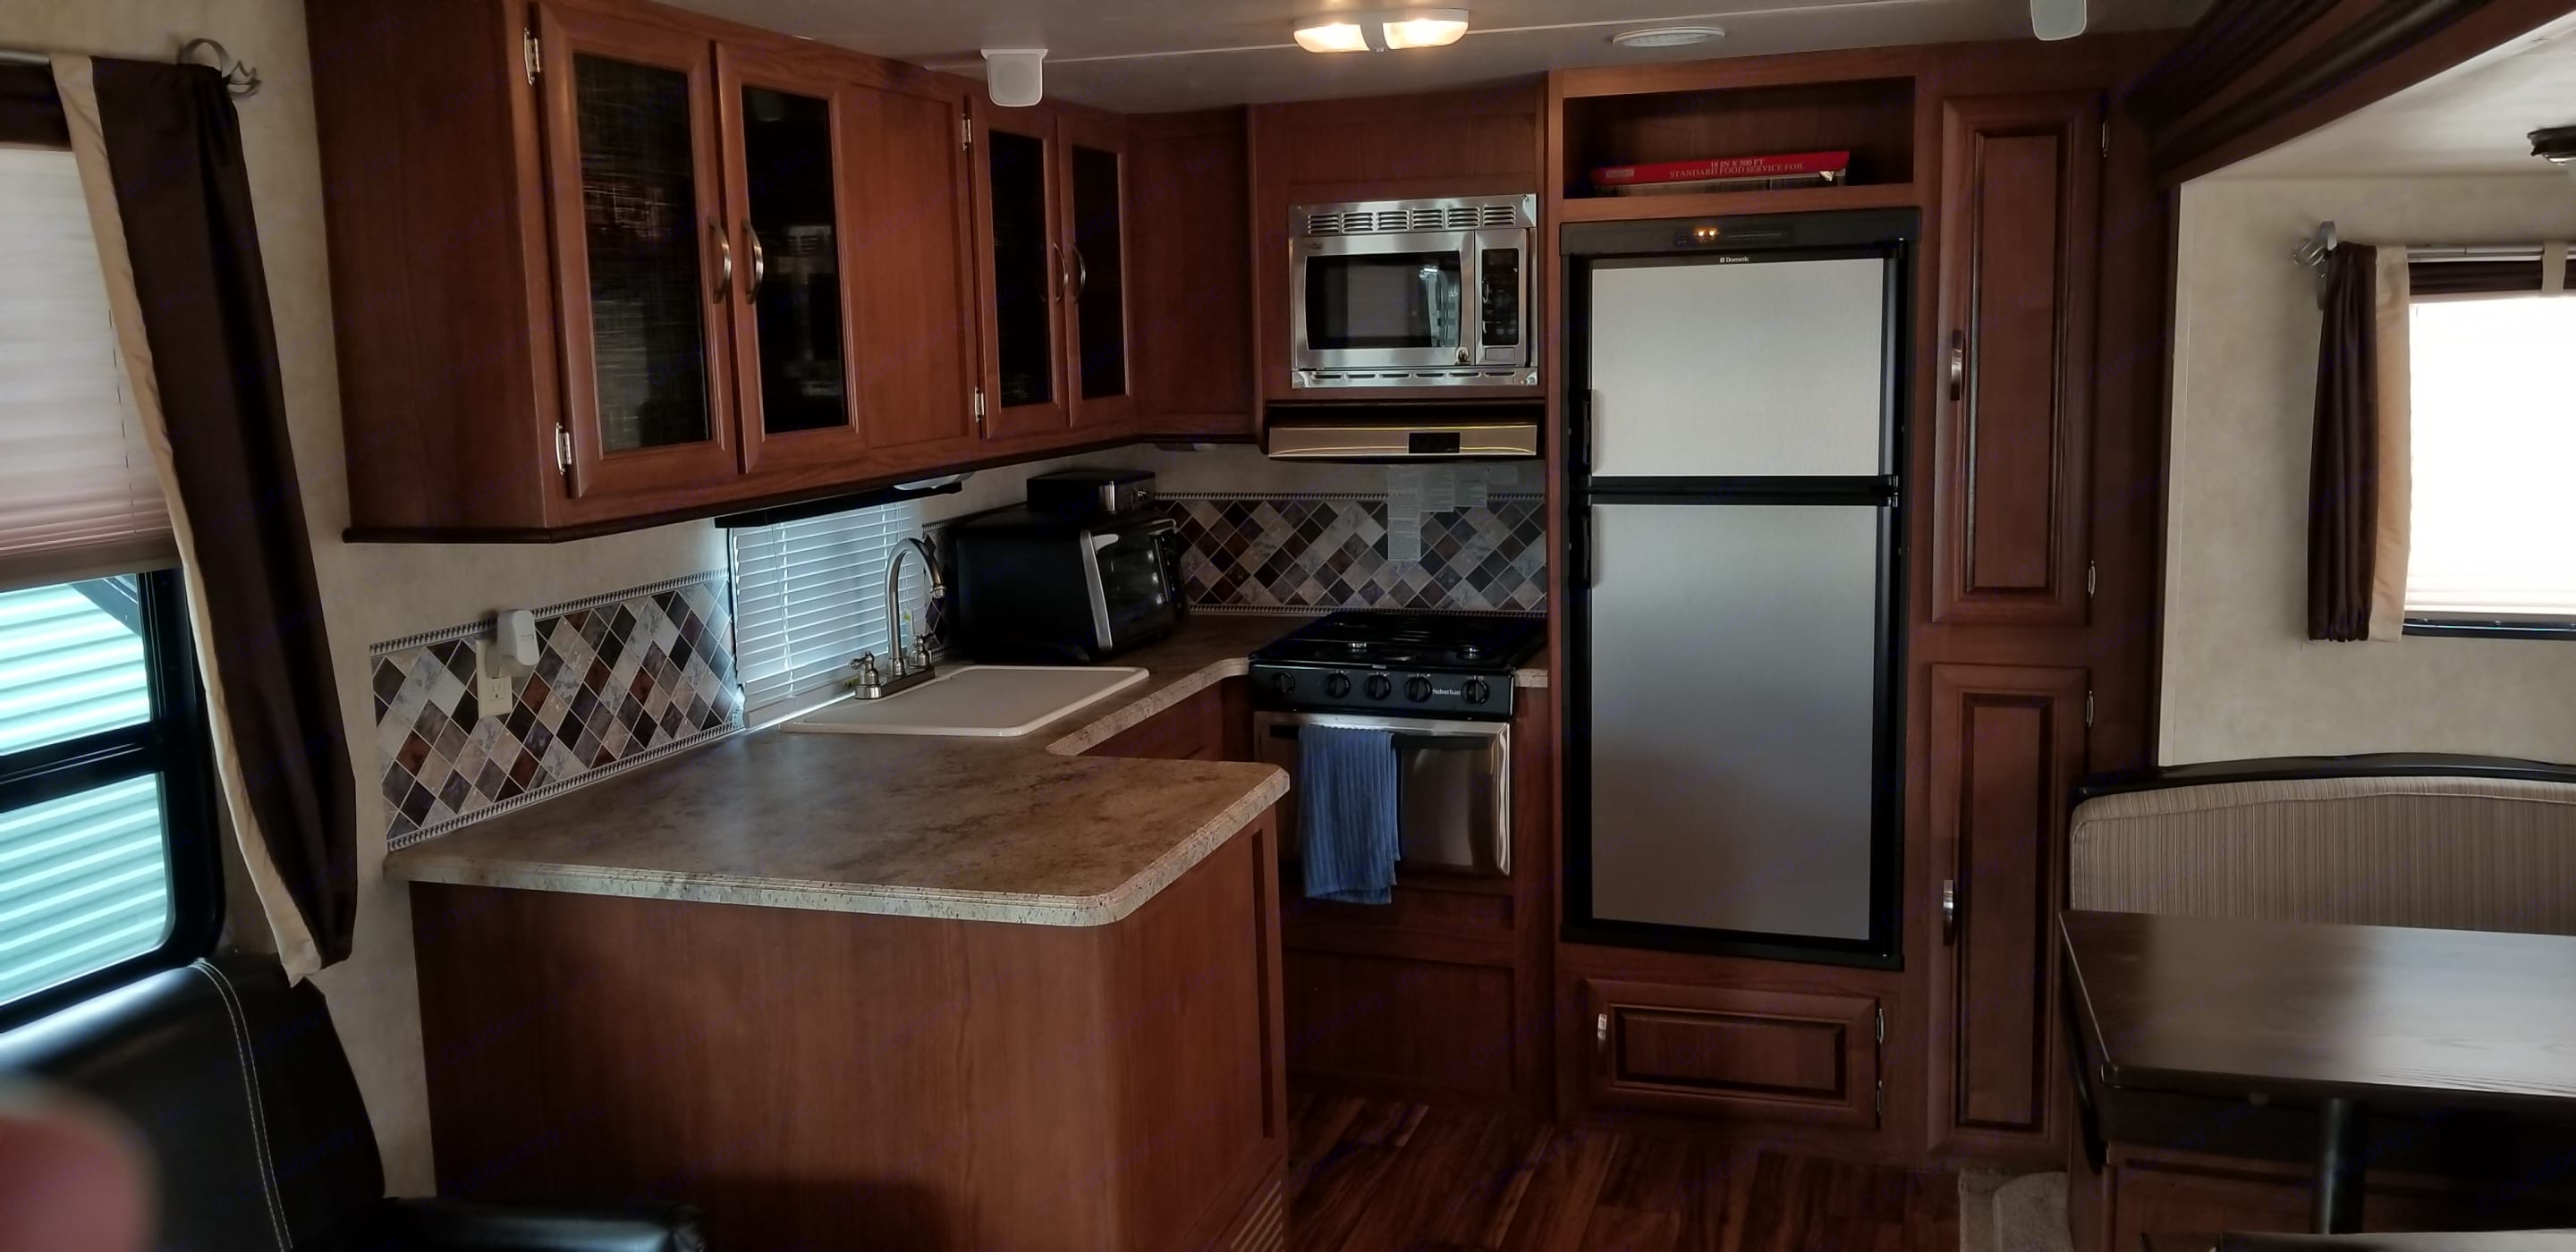 Micro wave,Oven, 3 Burner Stove, Pan Tree, lots of storage space. Forest River Wildwood 2016